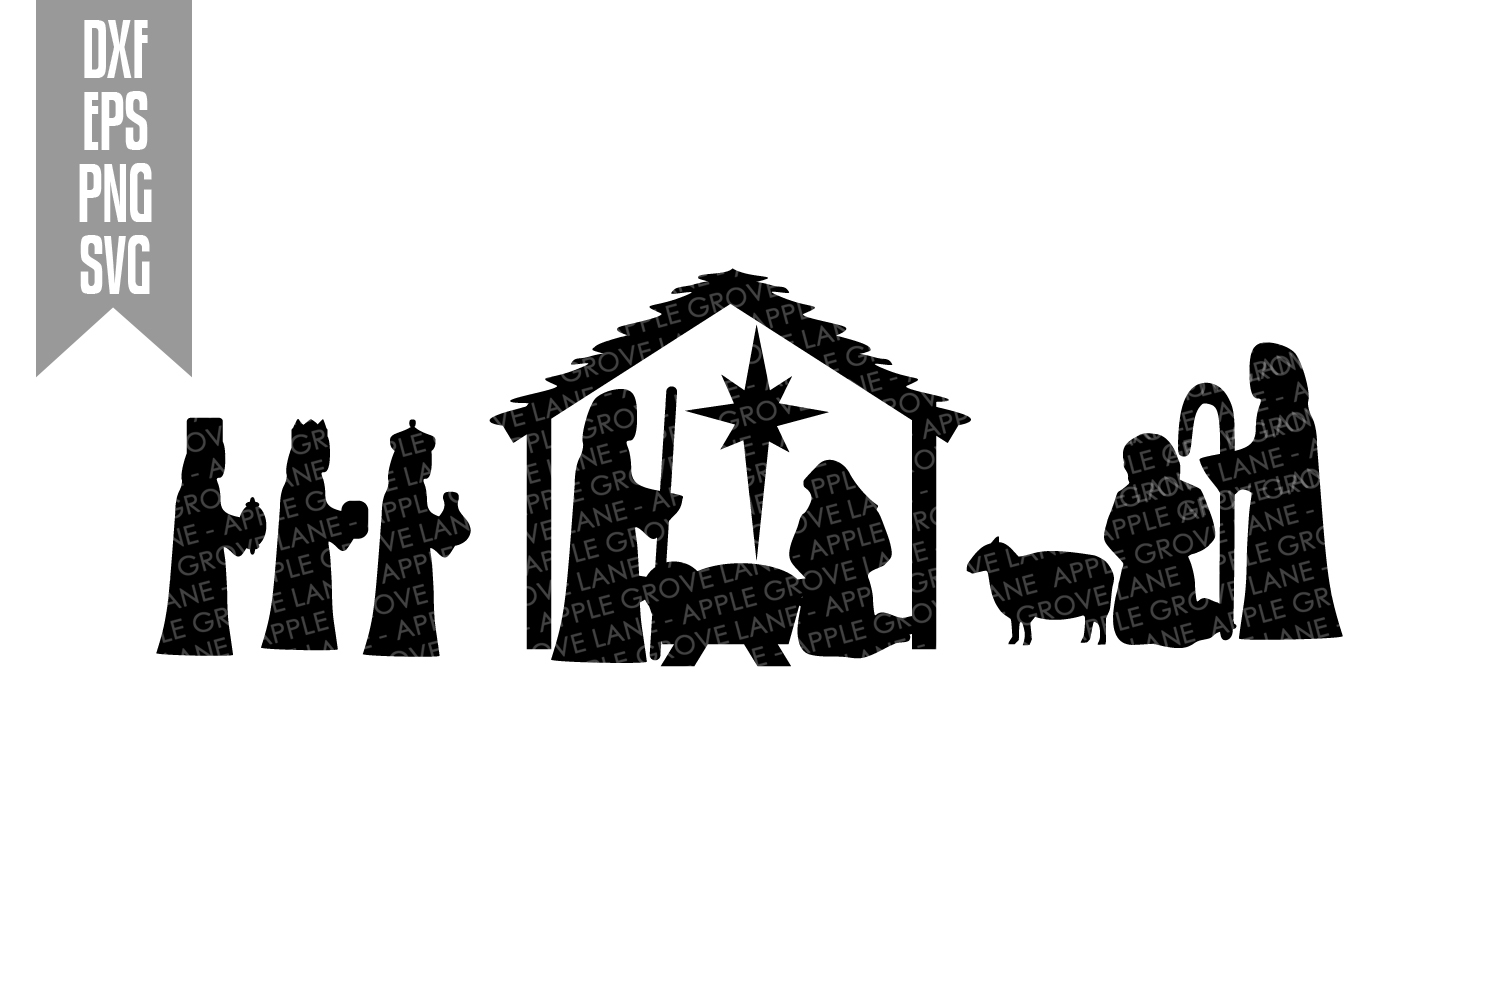 Nativity Svg Bundle - 9 designs included - Svg Cut Files example image 10